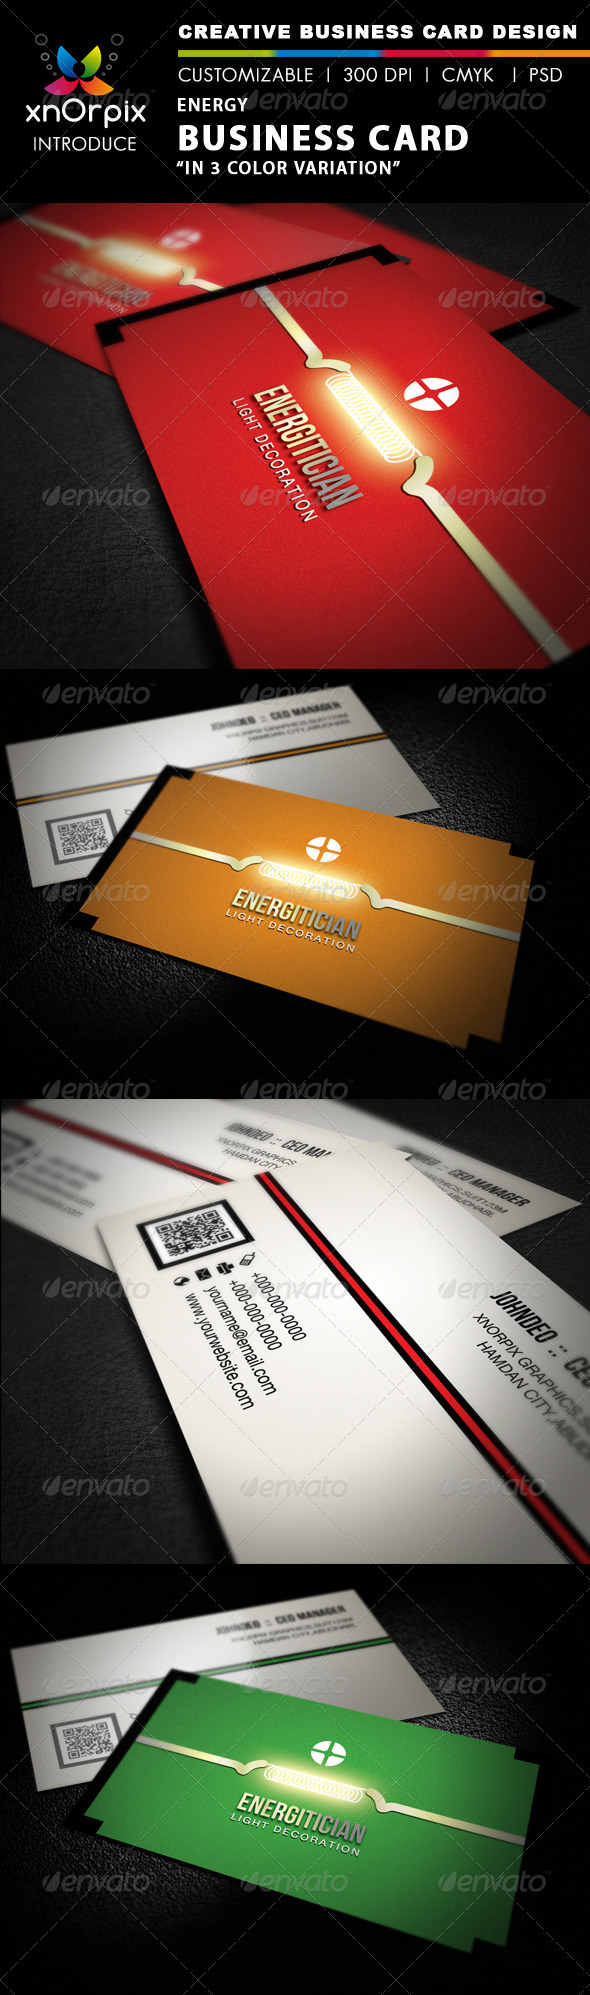 Energy Business Card - Corporate Business Cards